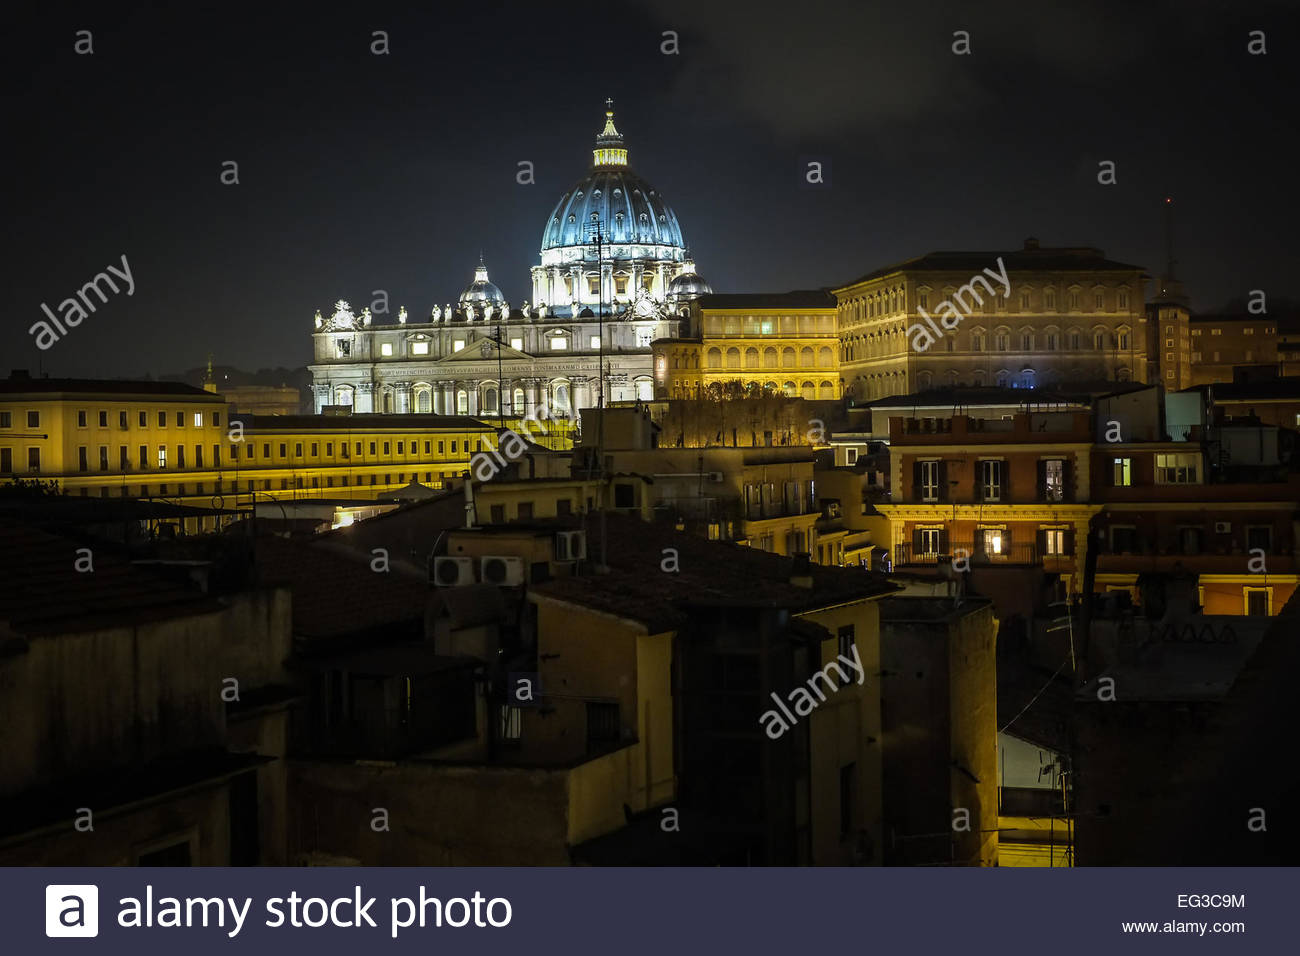 View of the St Peter's Basilica and Vatican city - Stock Image